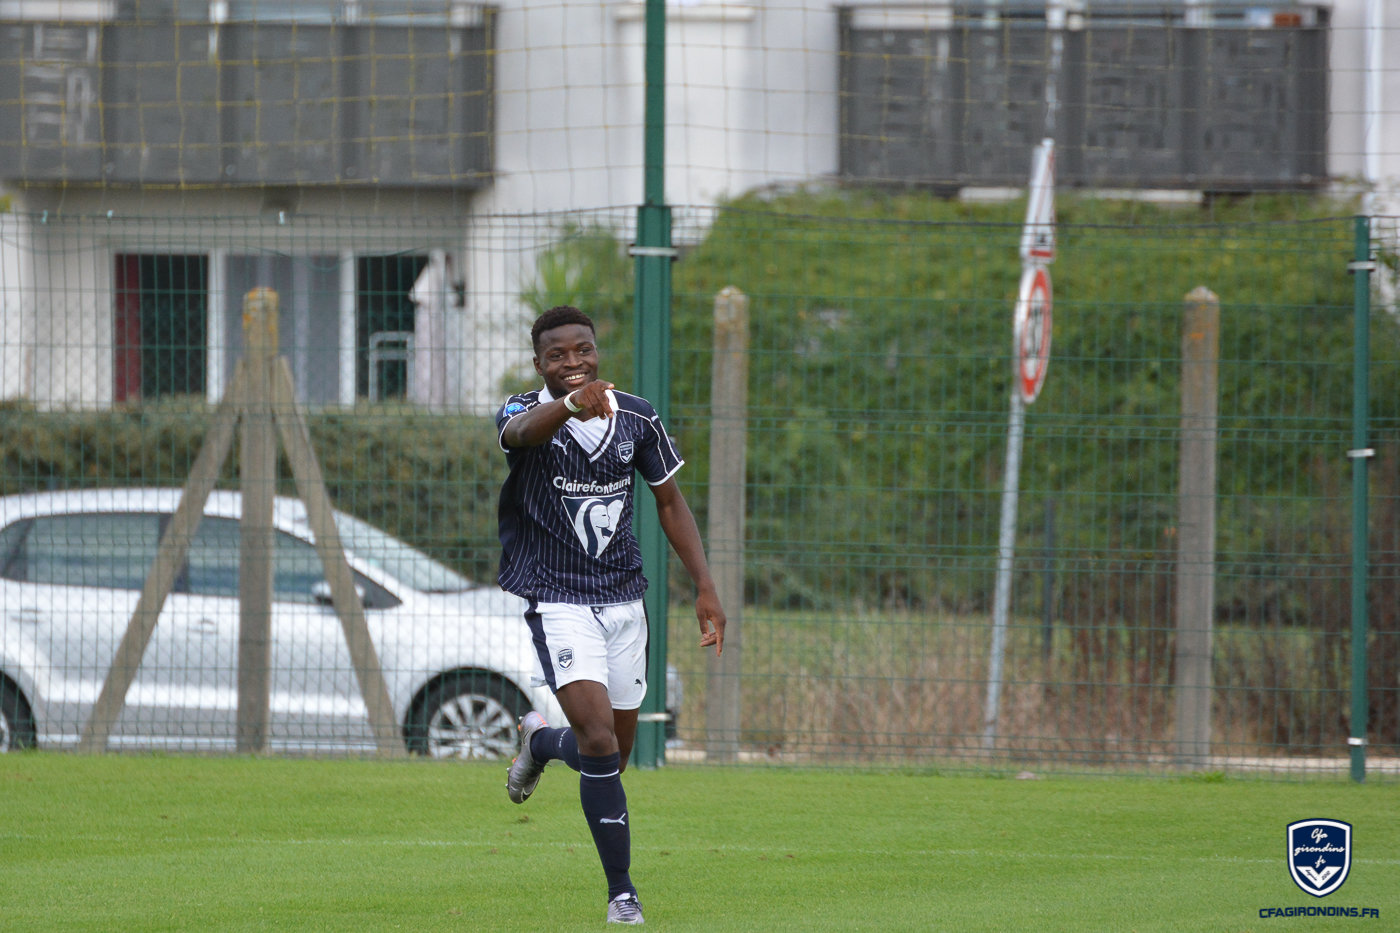 Cfa Girondins : Victoire contre Laval (4-2) - Formation Girondins